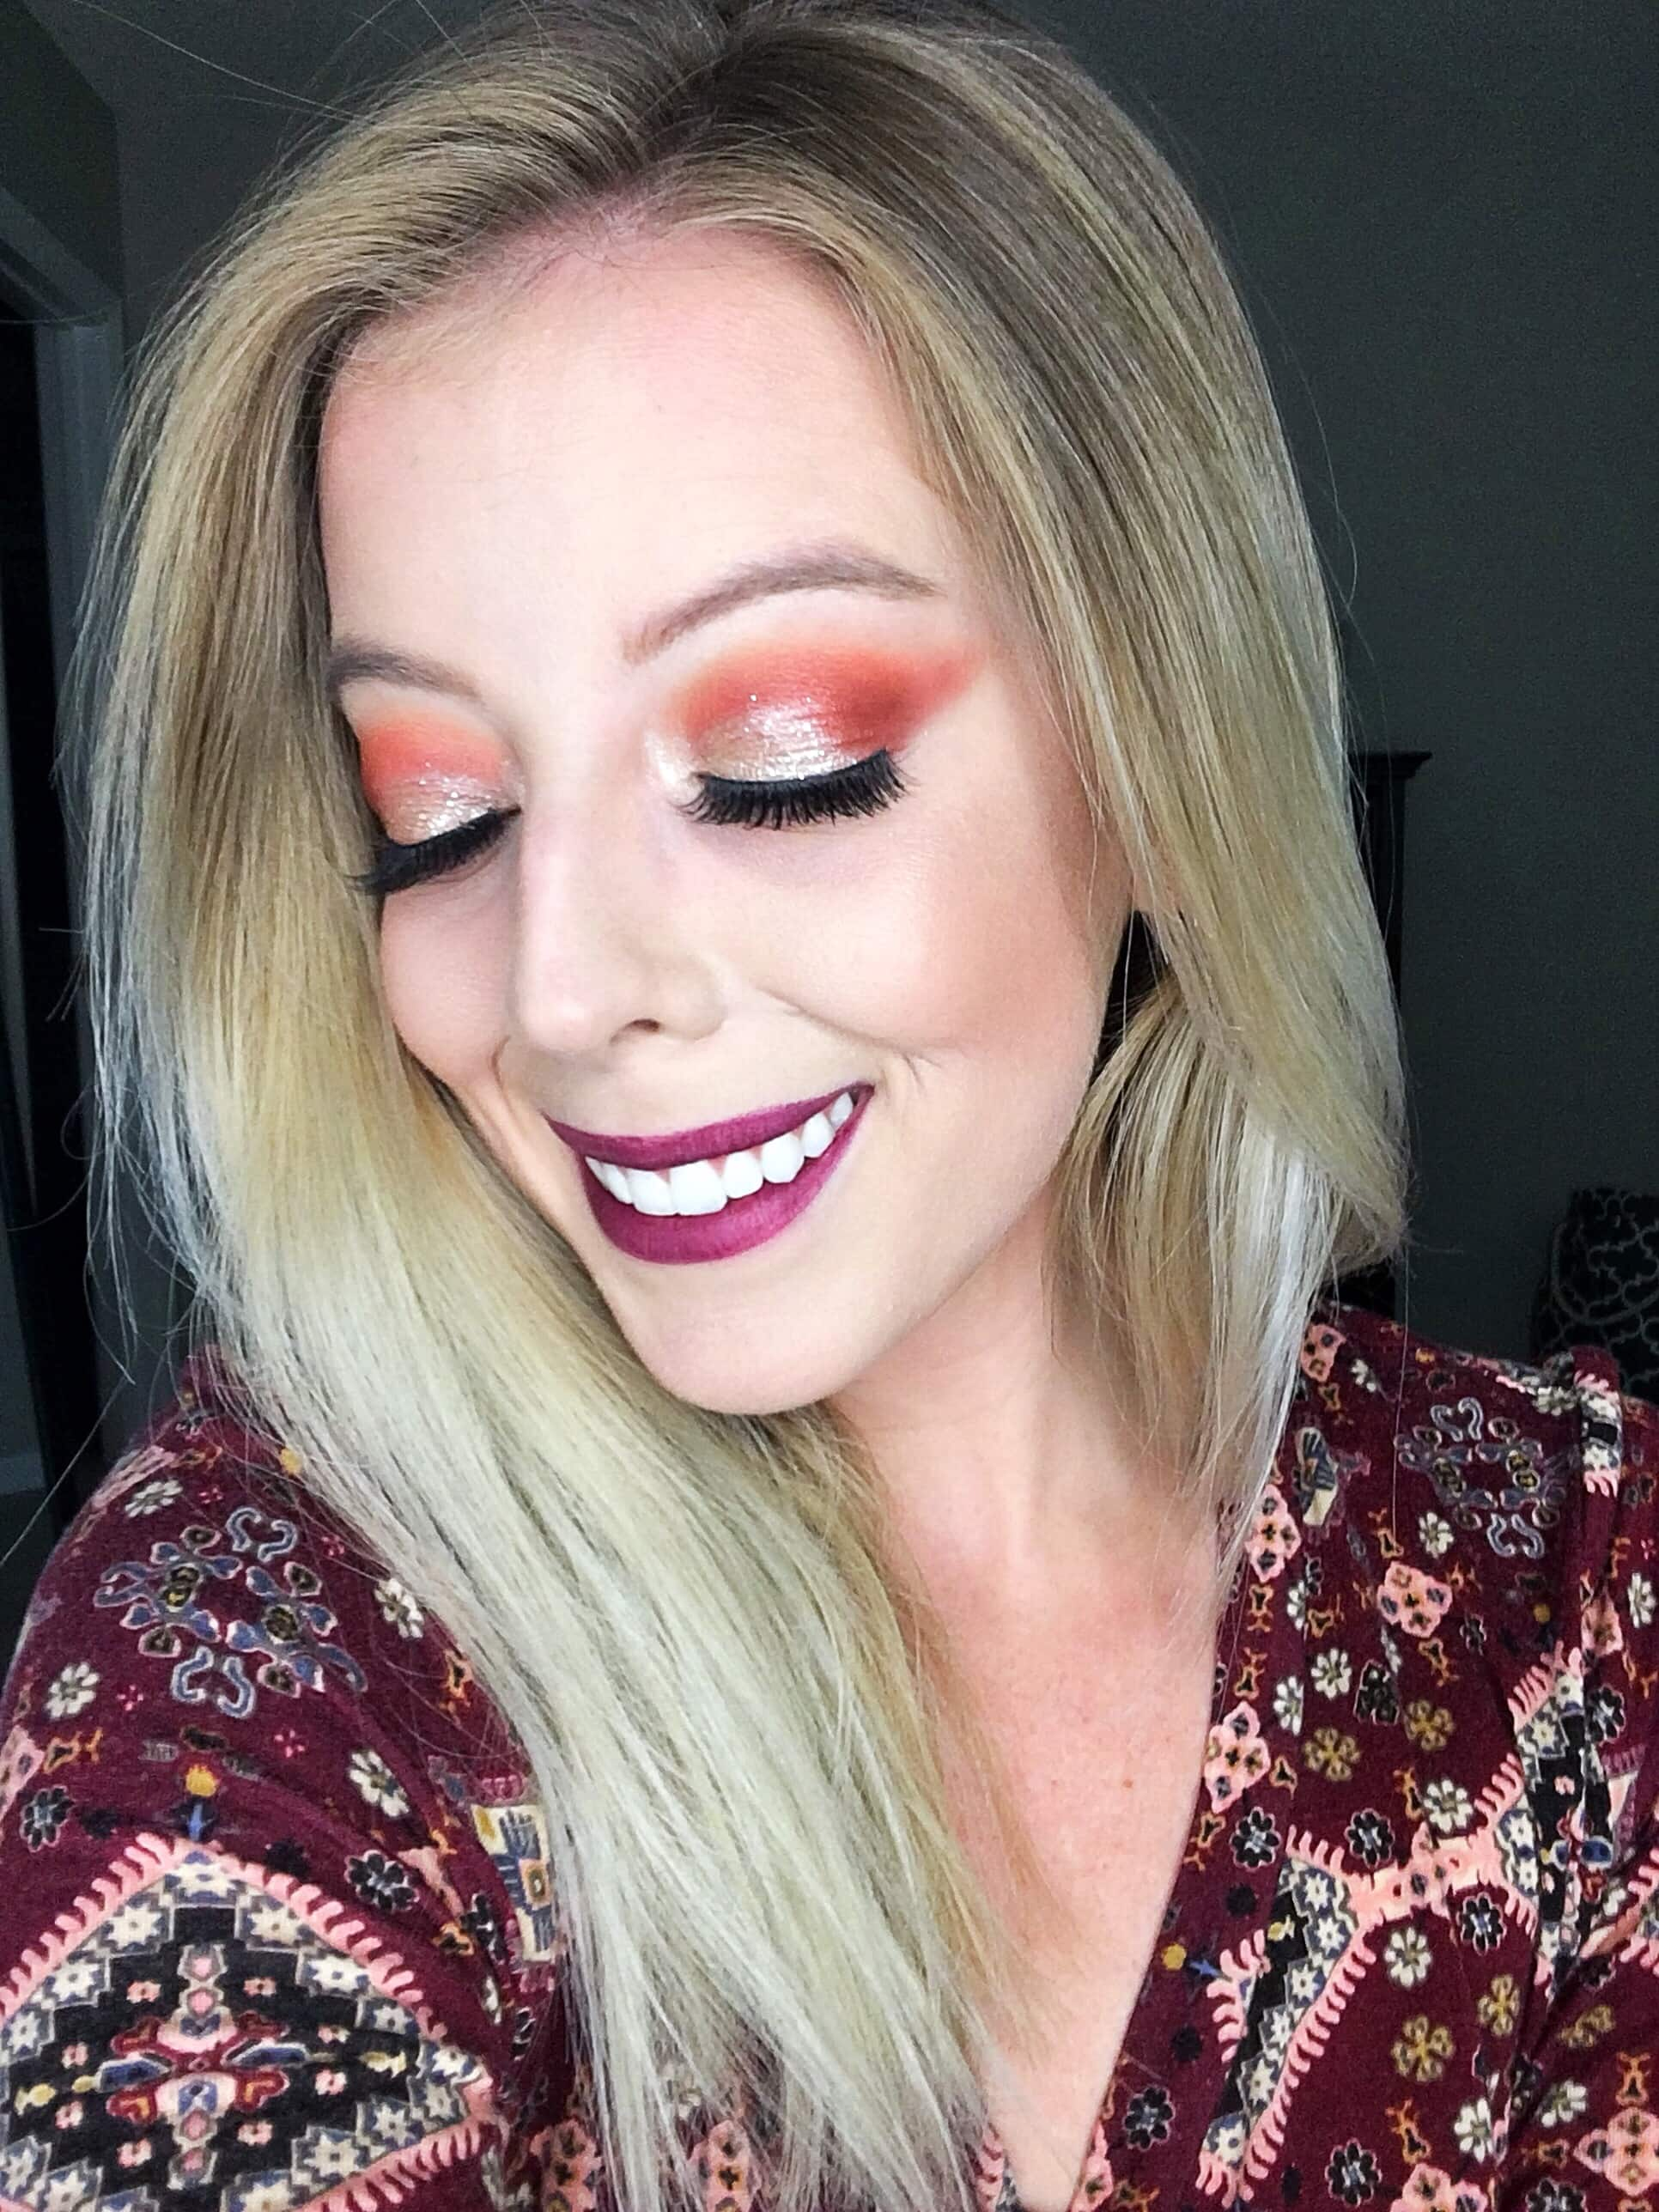 Gorgeous fall eye makeup look using the Morphe 350 Nature Glow palette! Check out my full review with swatches in the post. #falleyeshadow #fallmakeup #eyemakeup #eyeshadow